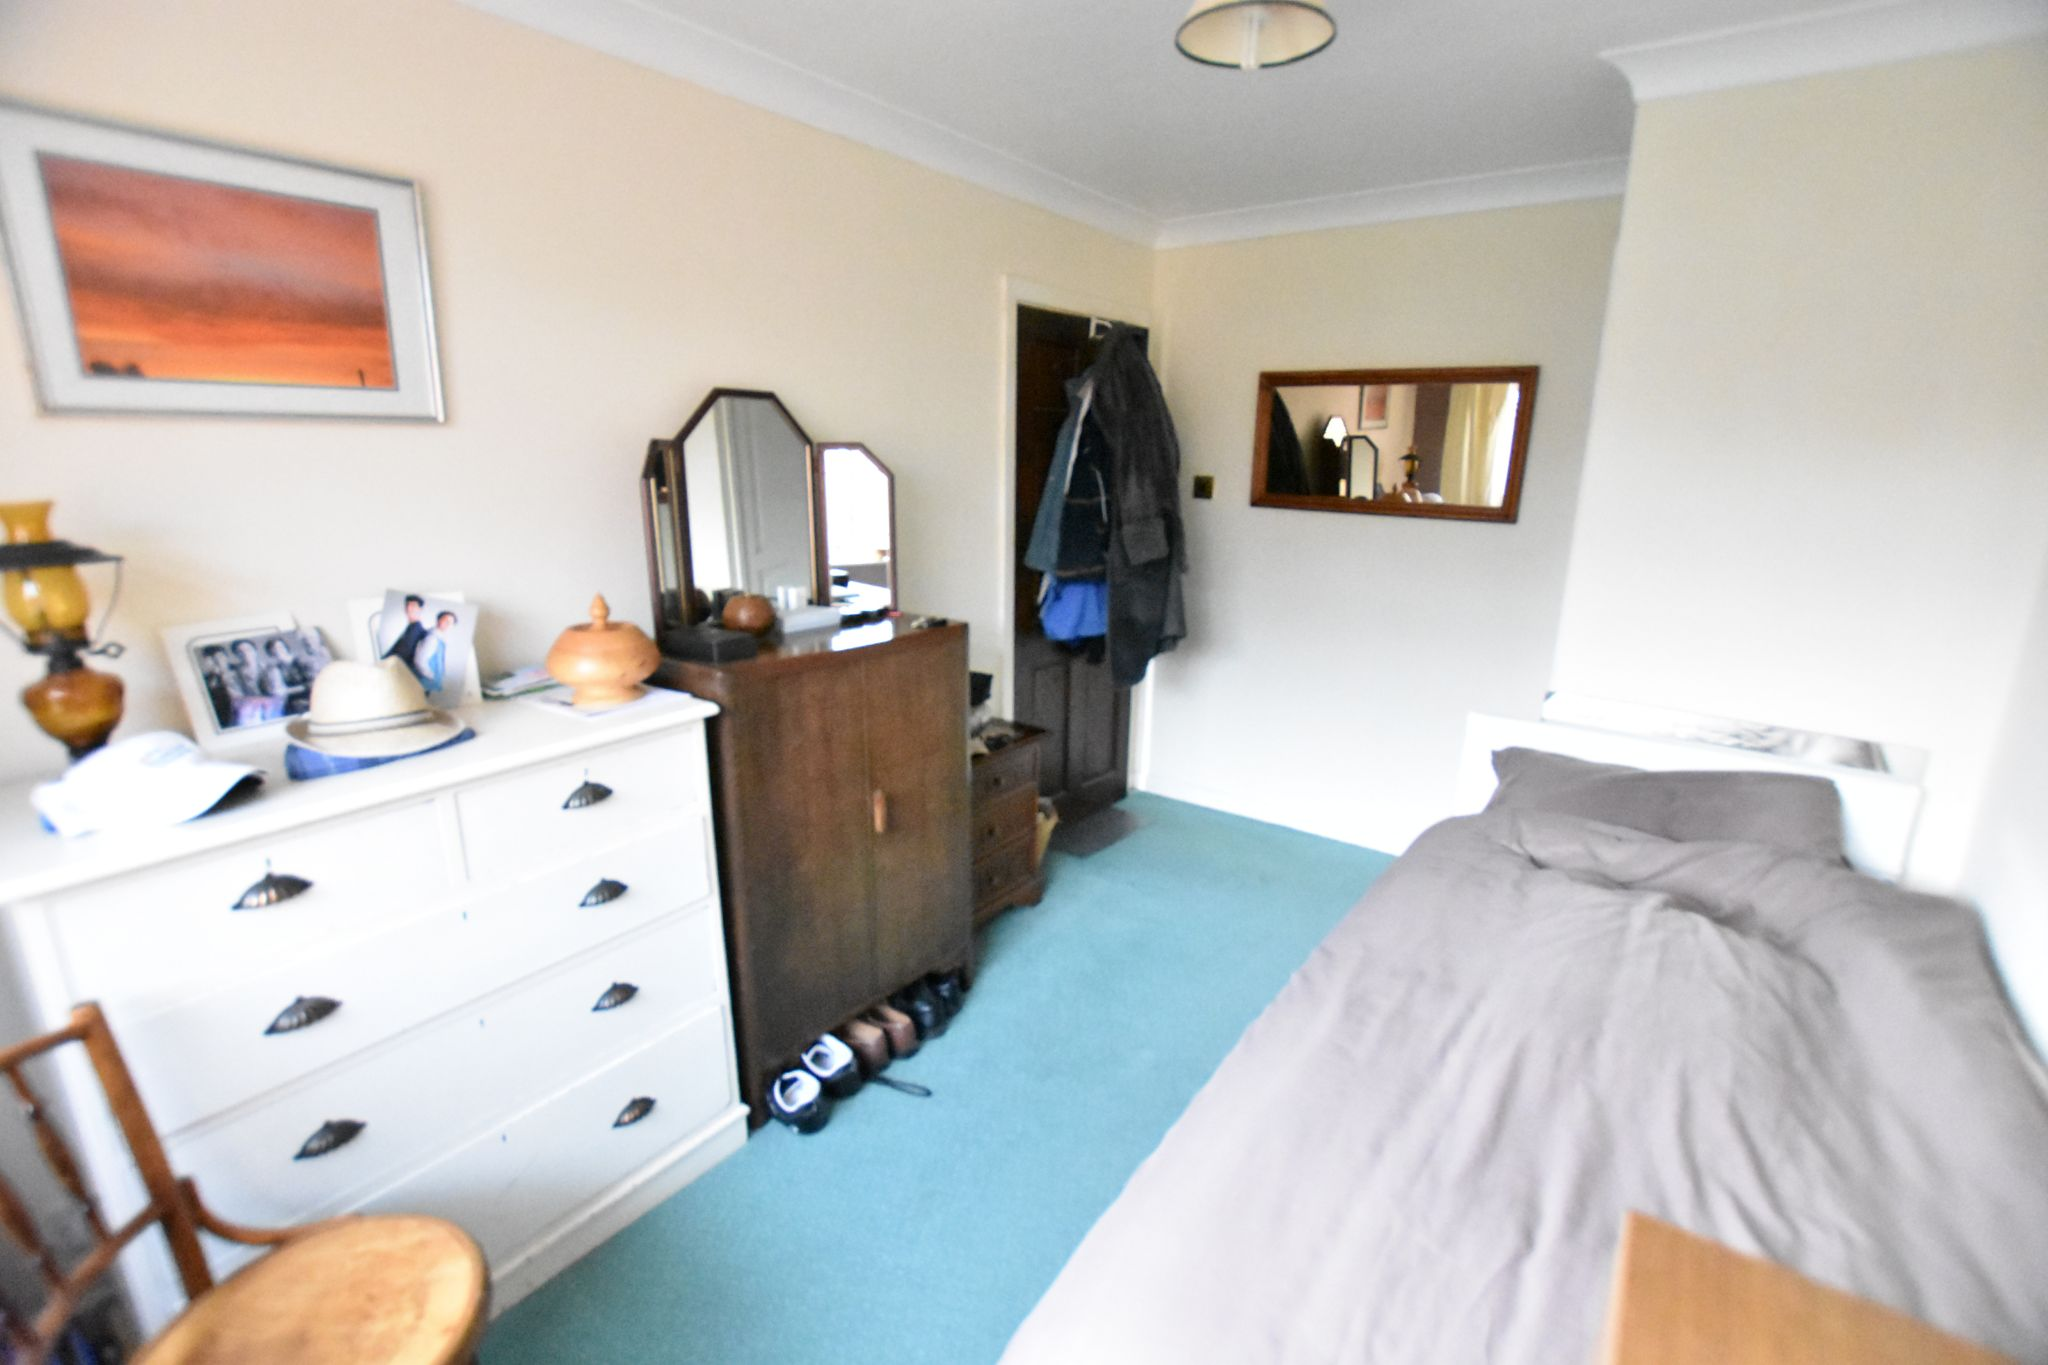 Image 3 of 3 of BEDROOM 1, on Accommodation Comprising for